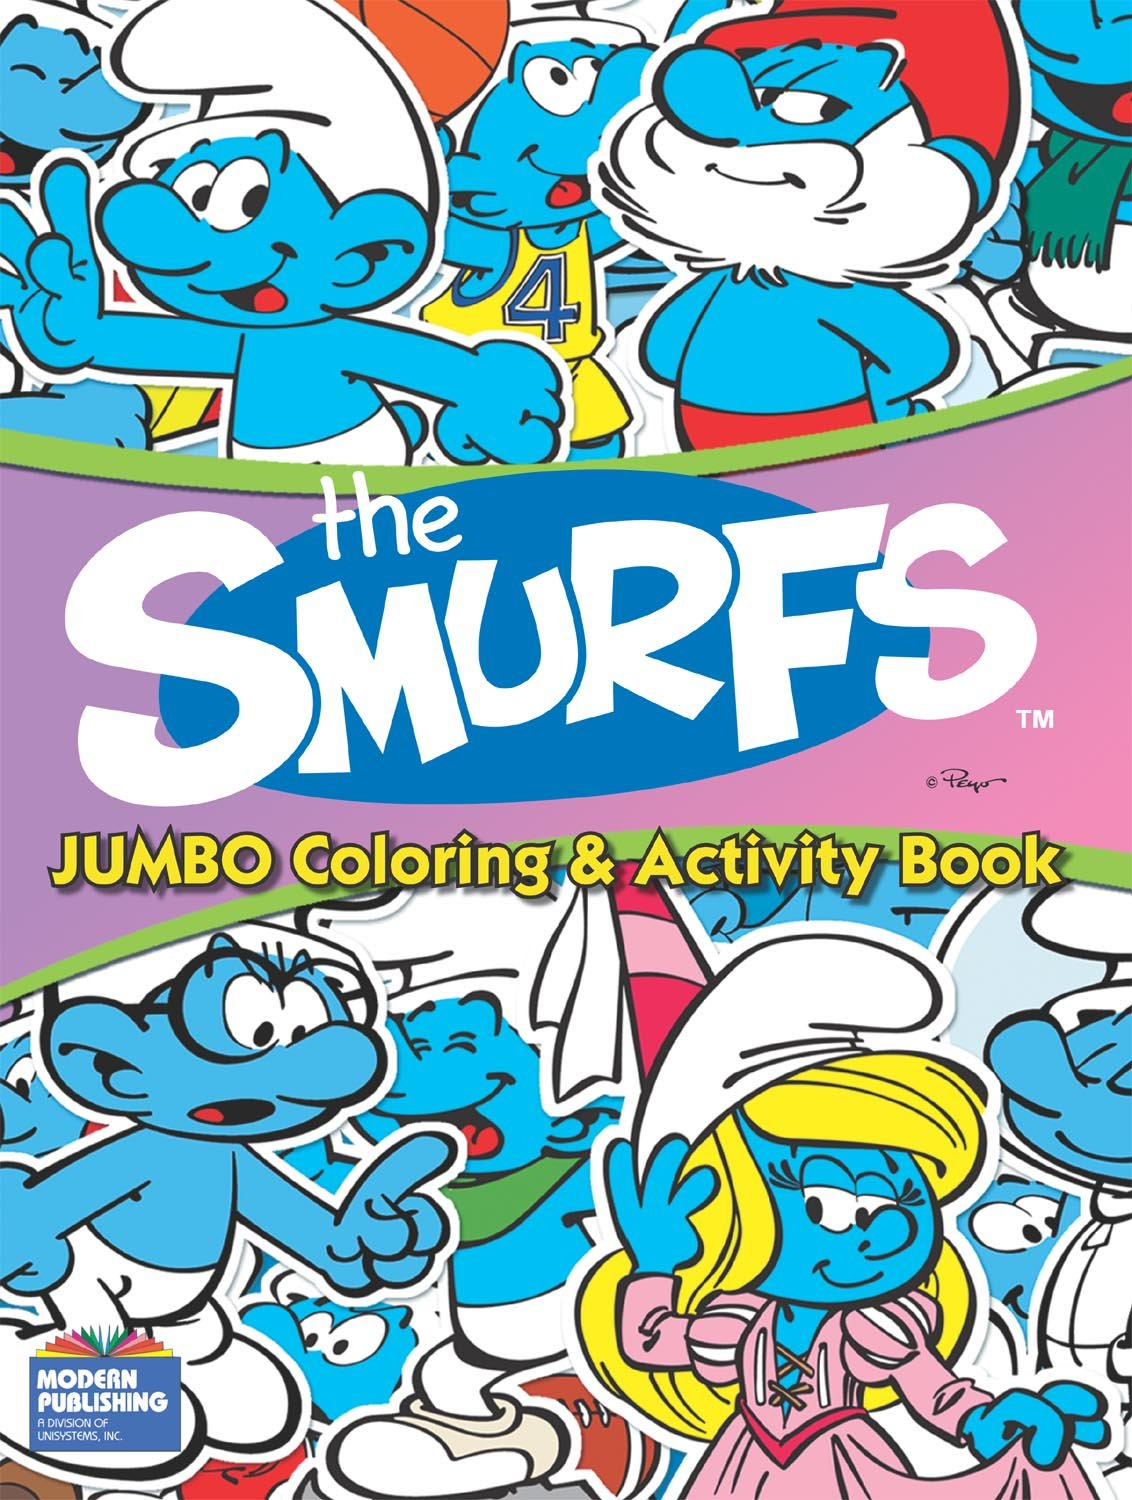 the Smurfs Jumbo Coloring and Activity Book: Modern Publishing ...